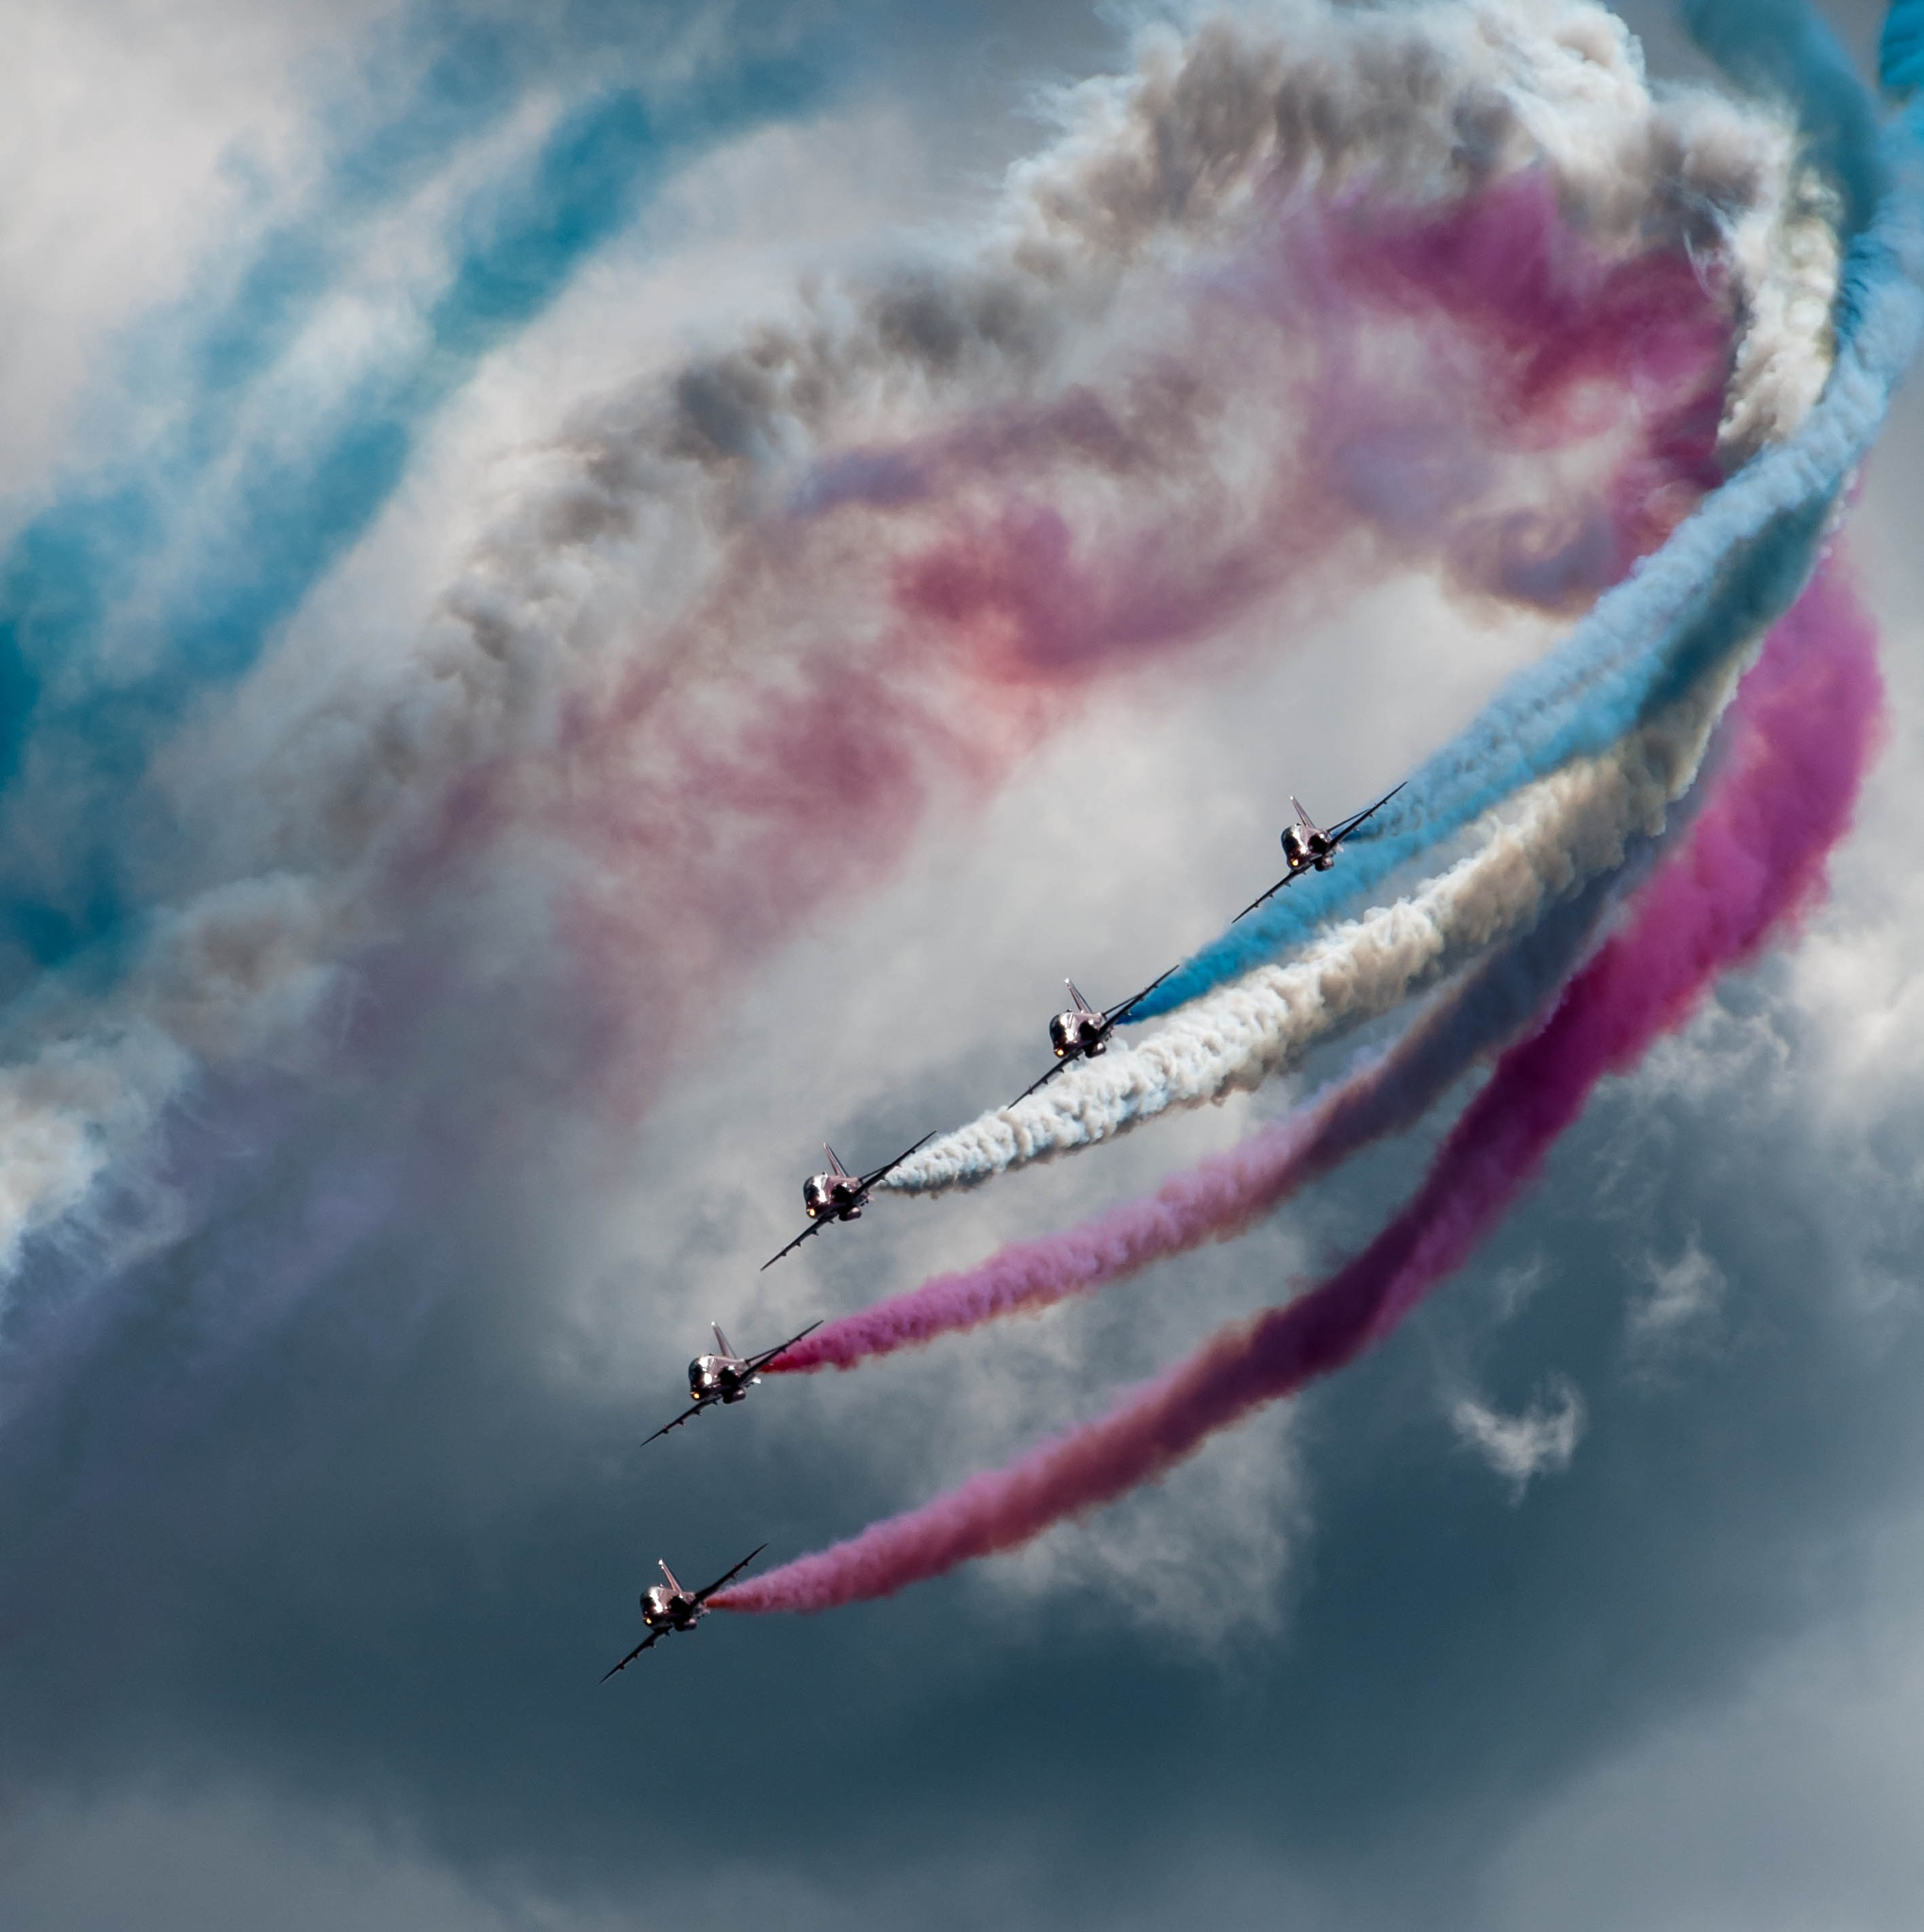 Red Arrows  by mark.usher.uk